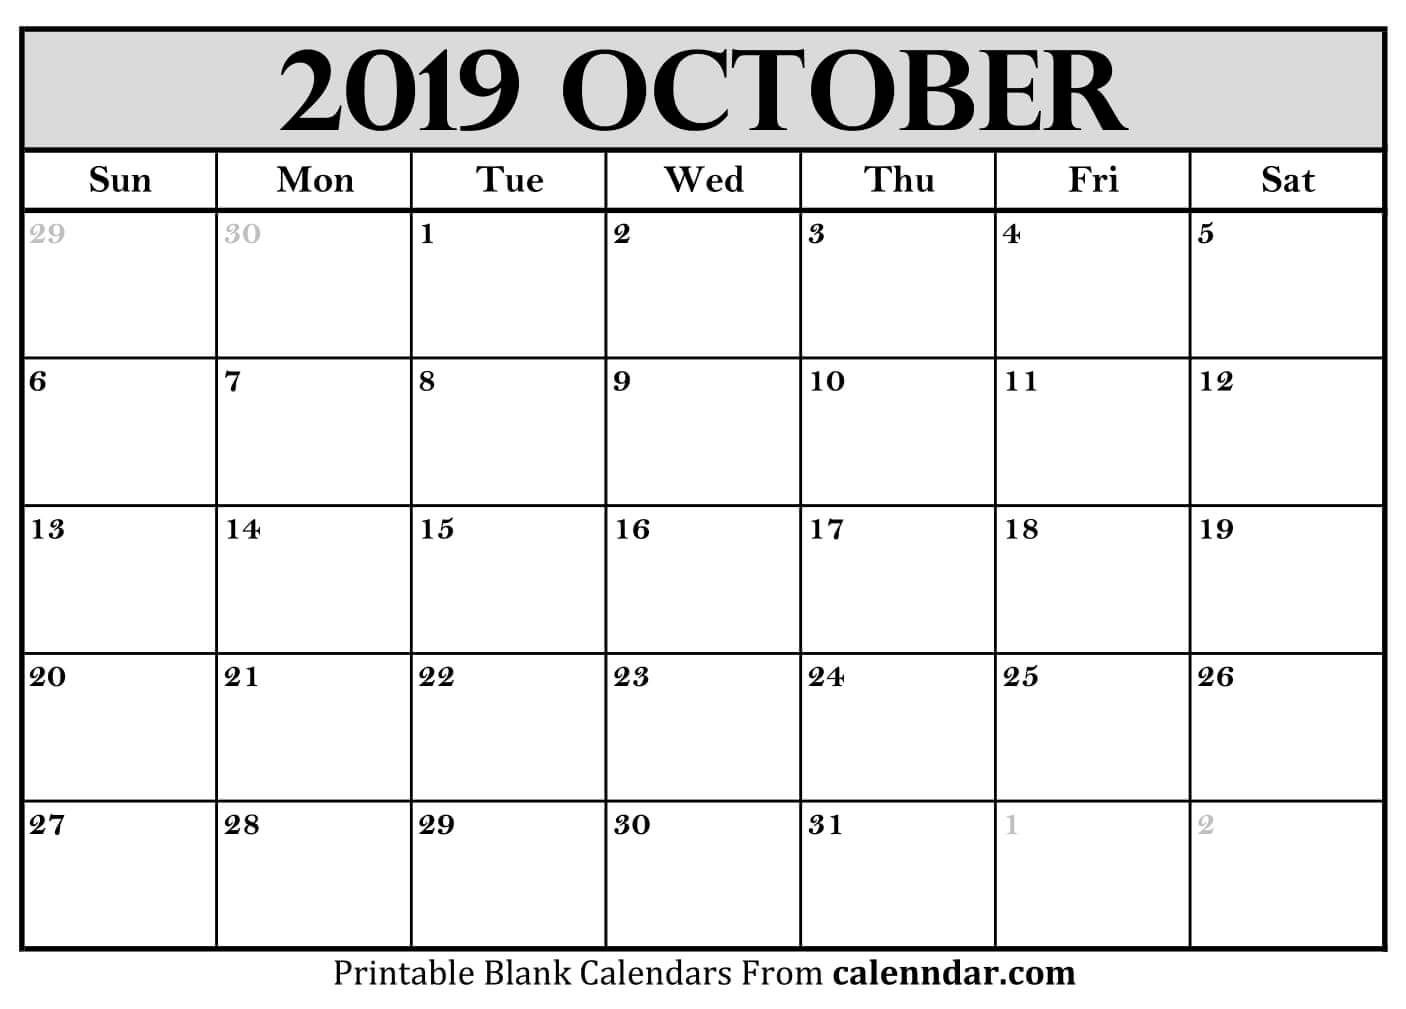 October 2019 Calendar Pdf Word Excel Templates 2019 Calendar